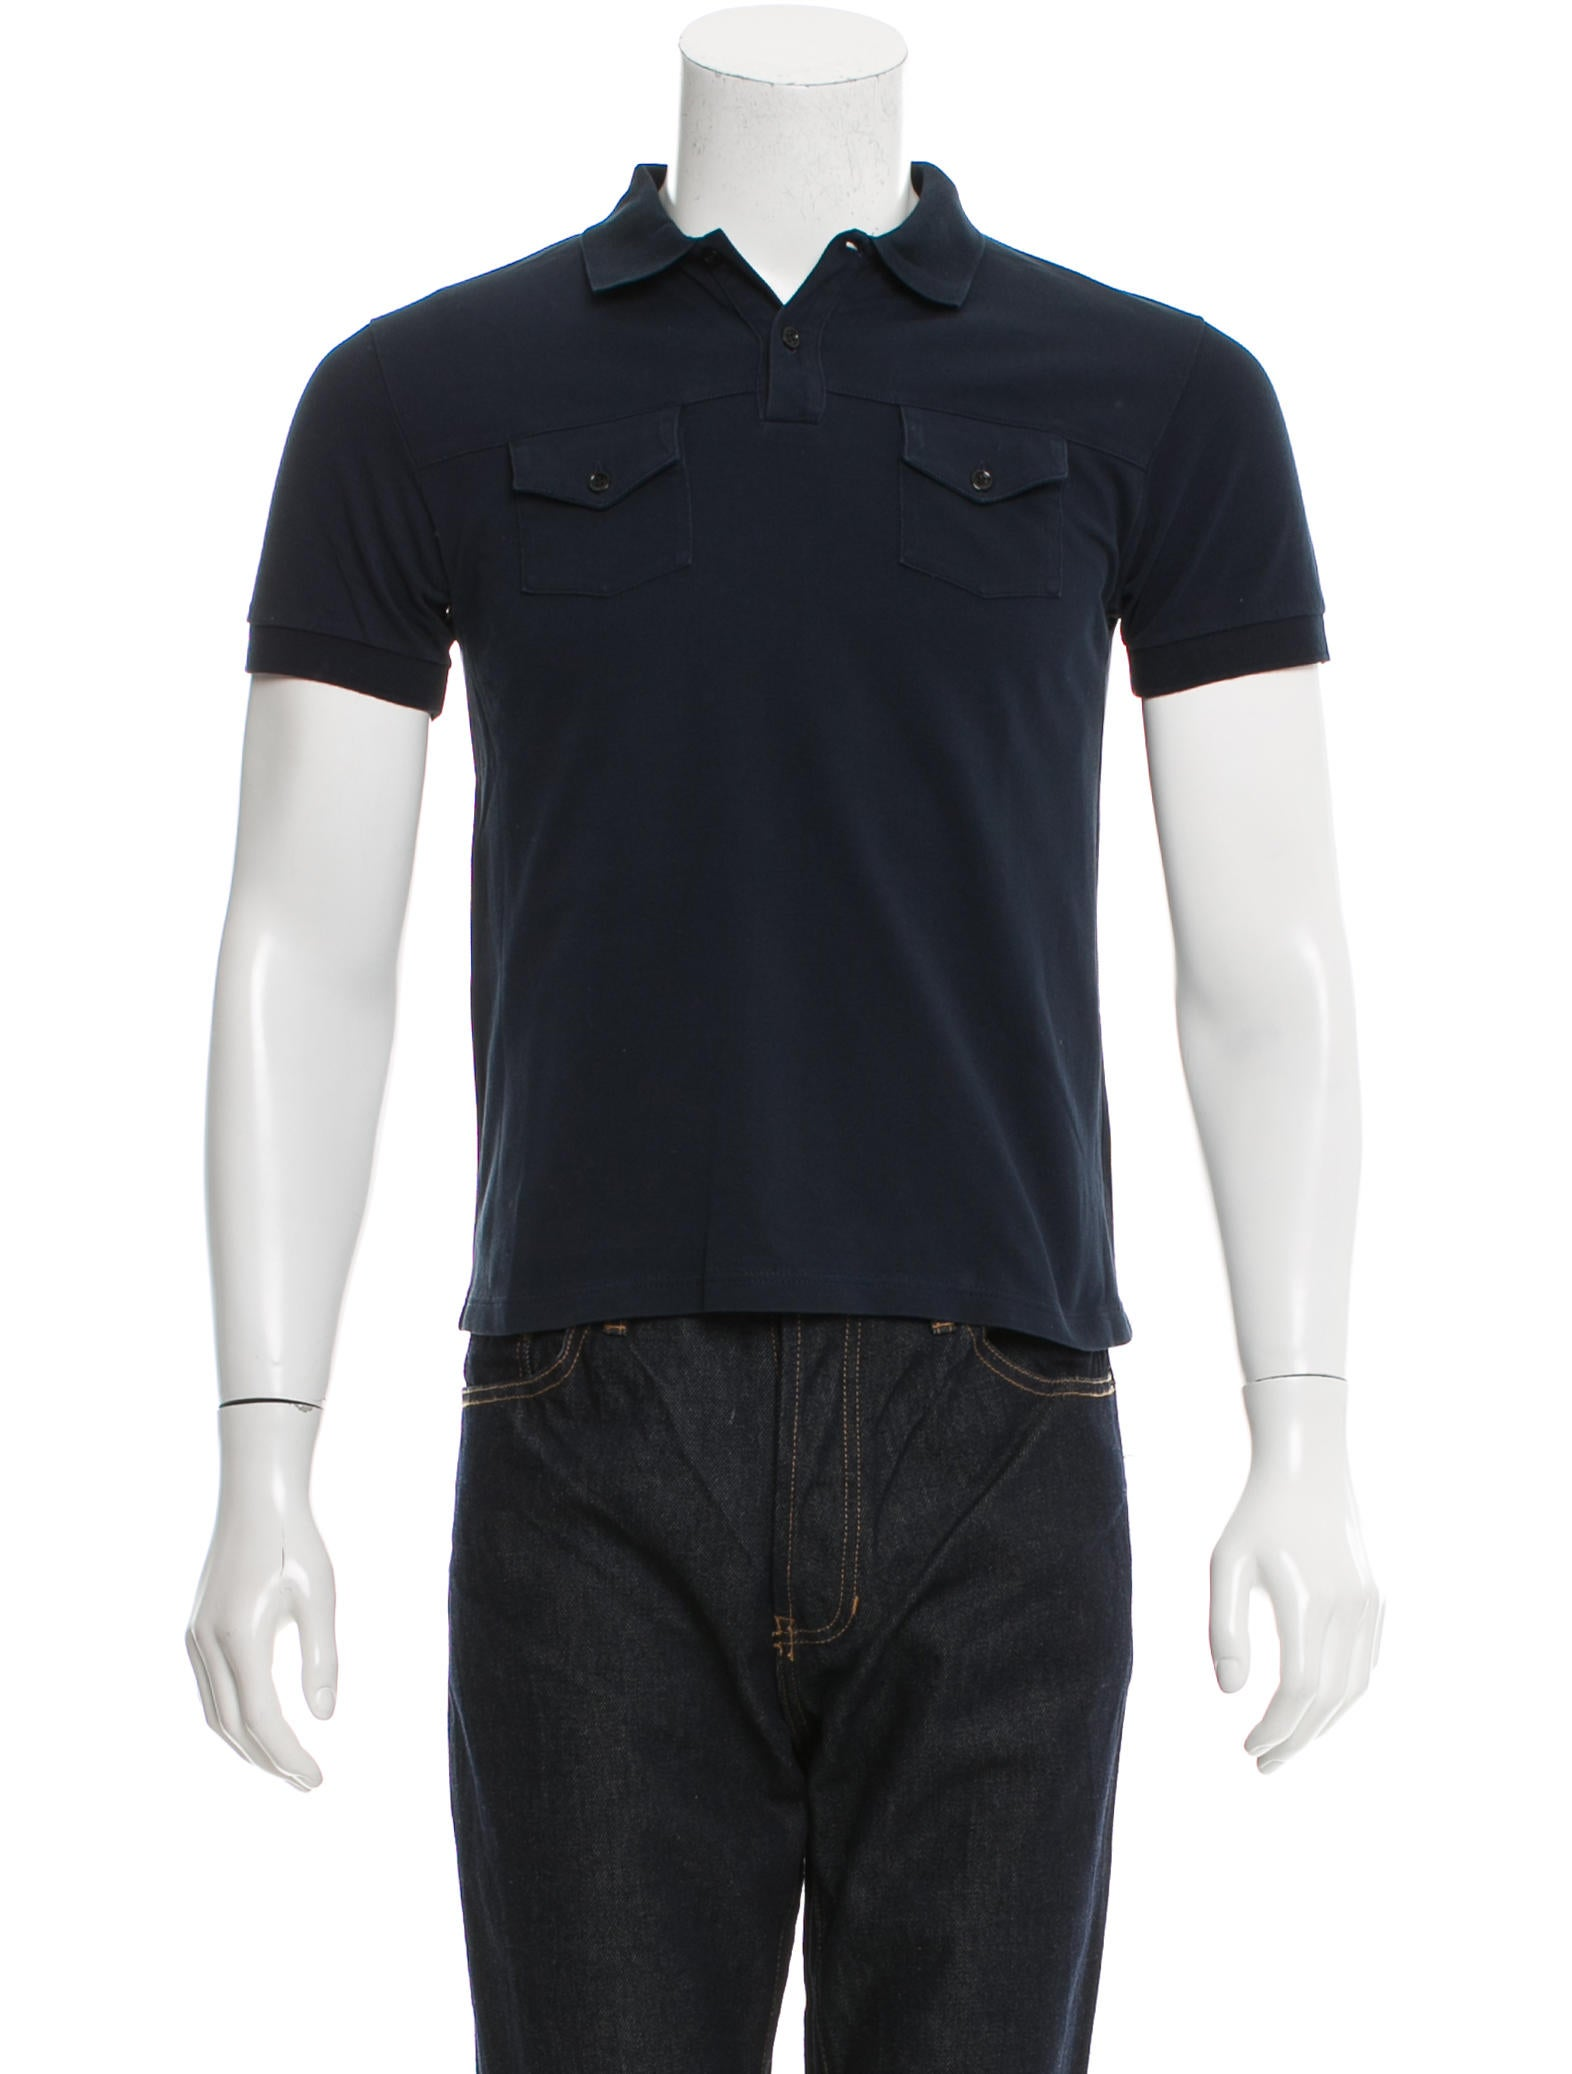 Dior homme two pocket polo shirt clothing hmm22930 for Two pocket polo shirt